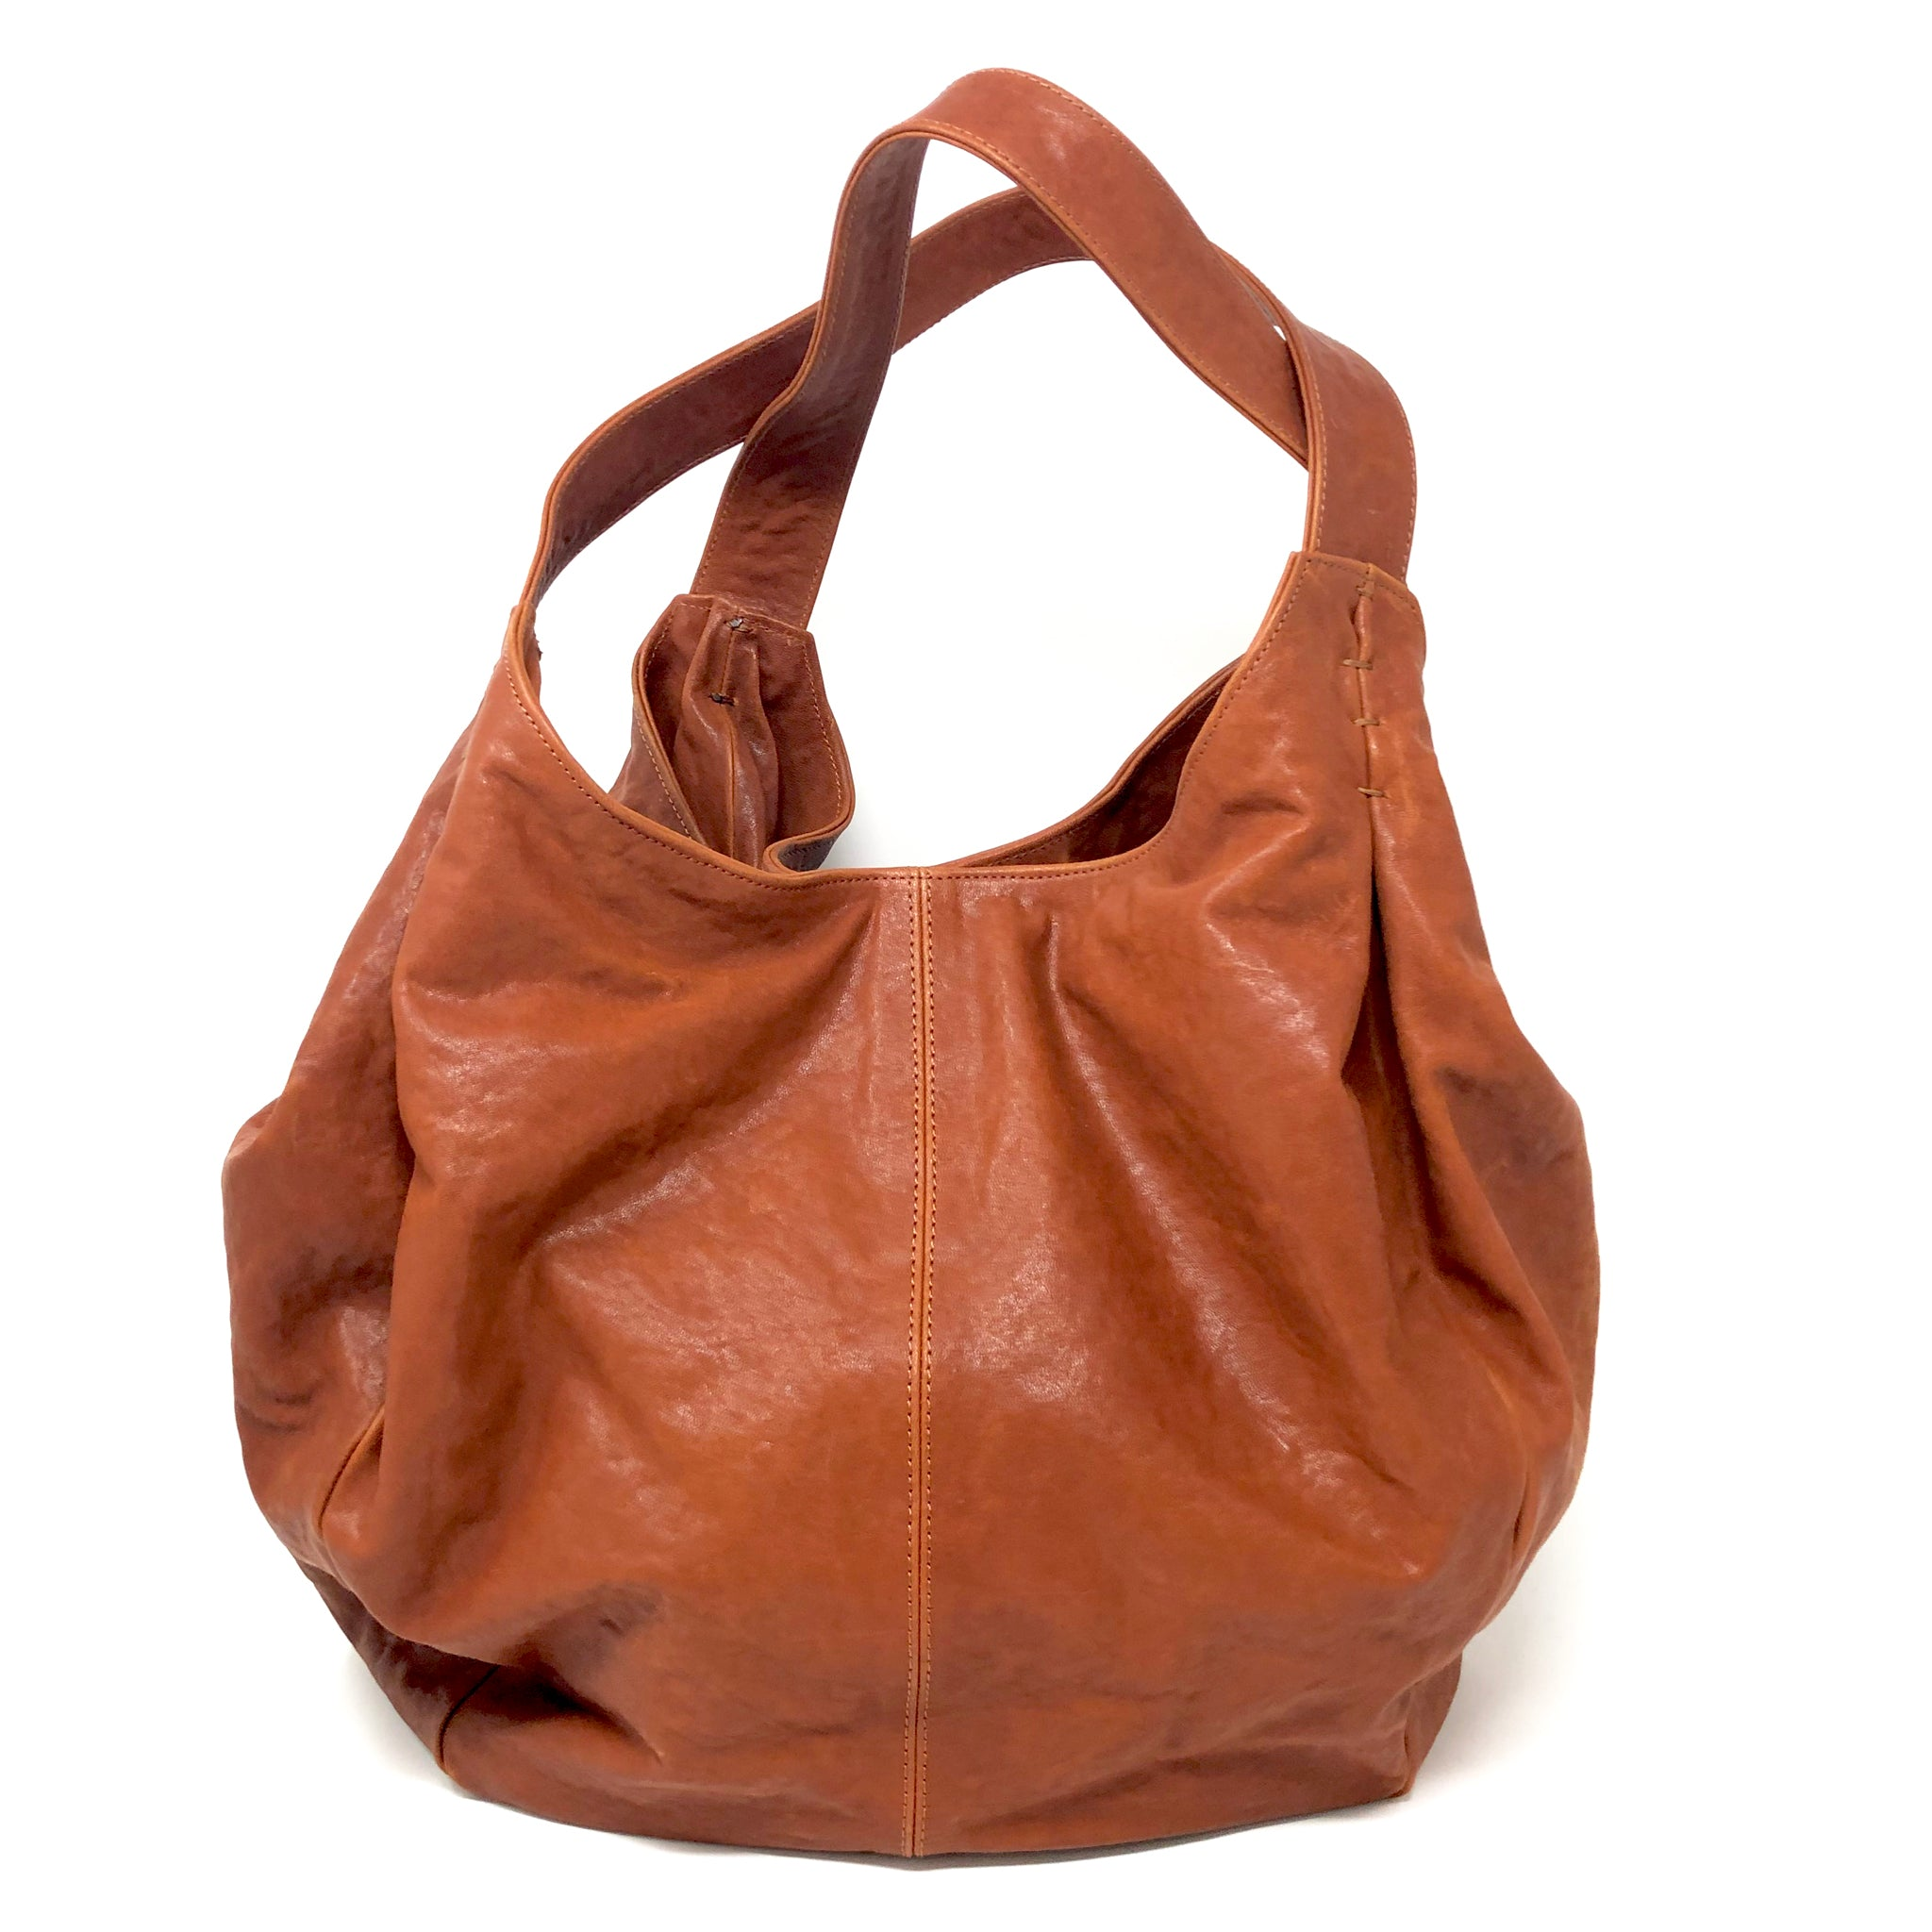 Menorca Leather Bag